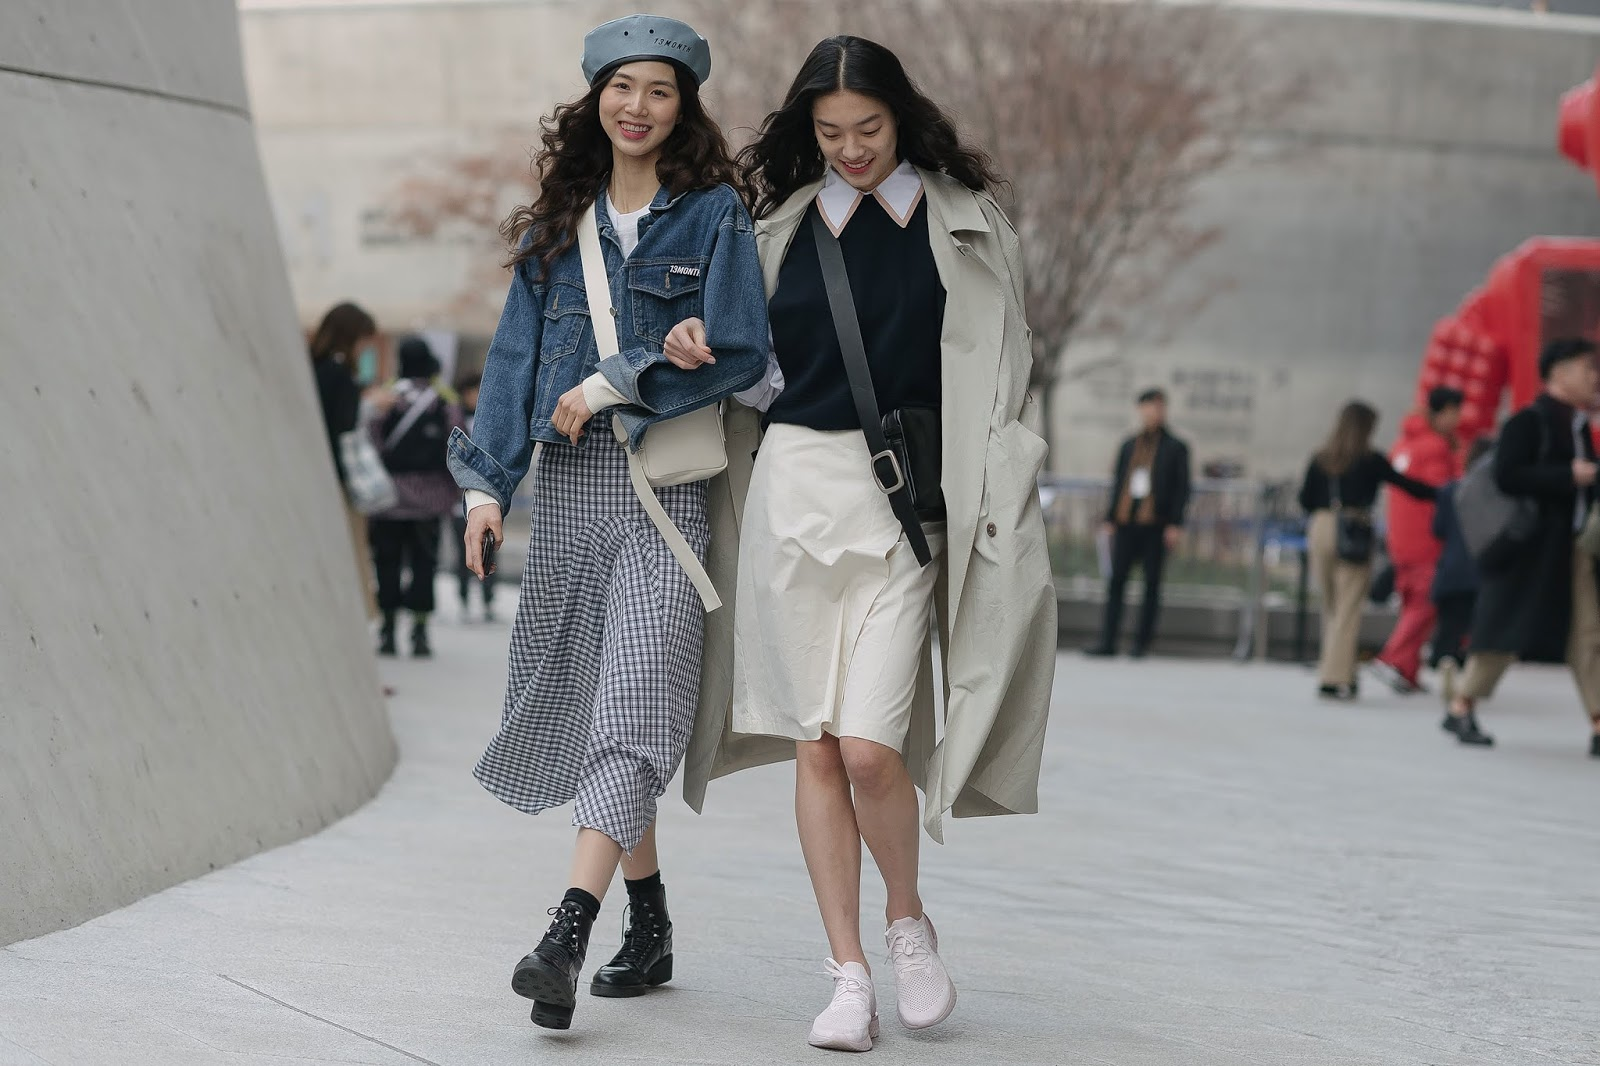 11 Best Korean Fashion Wholesale Clothing Suppliers - Wholesale7 Blog -  Latest Fashion News And Trends